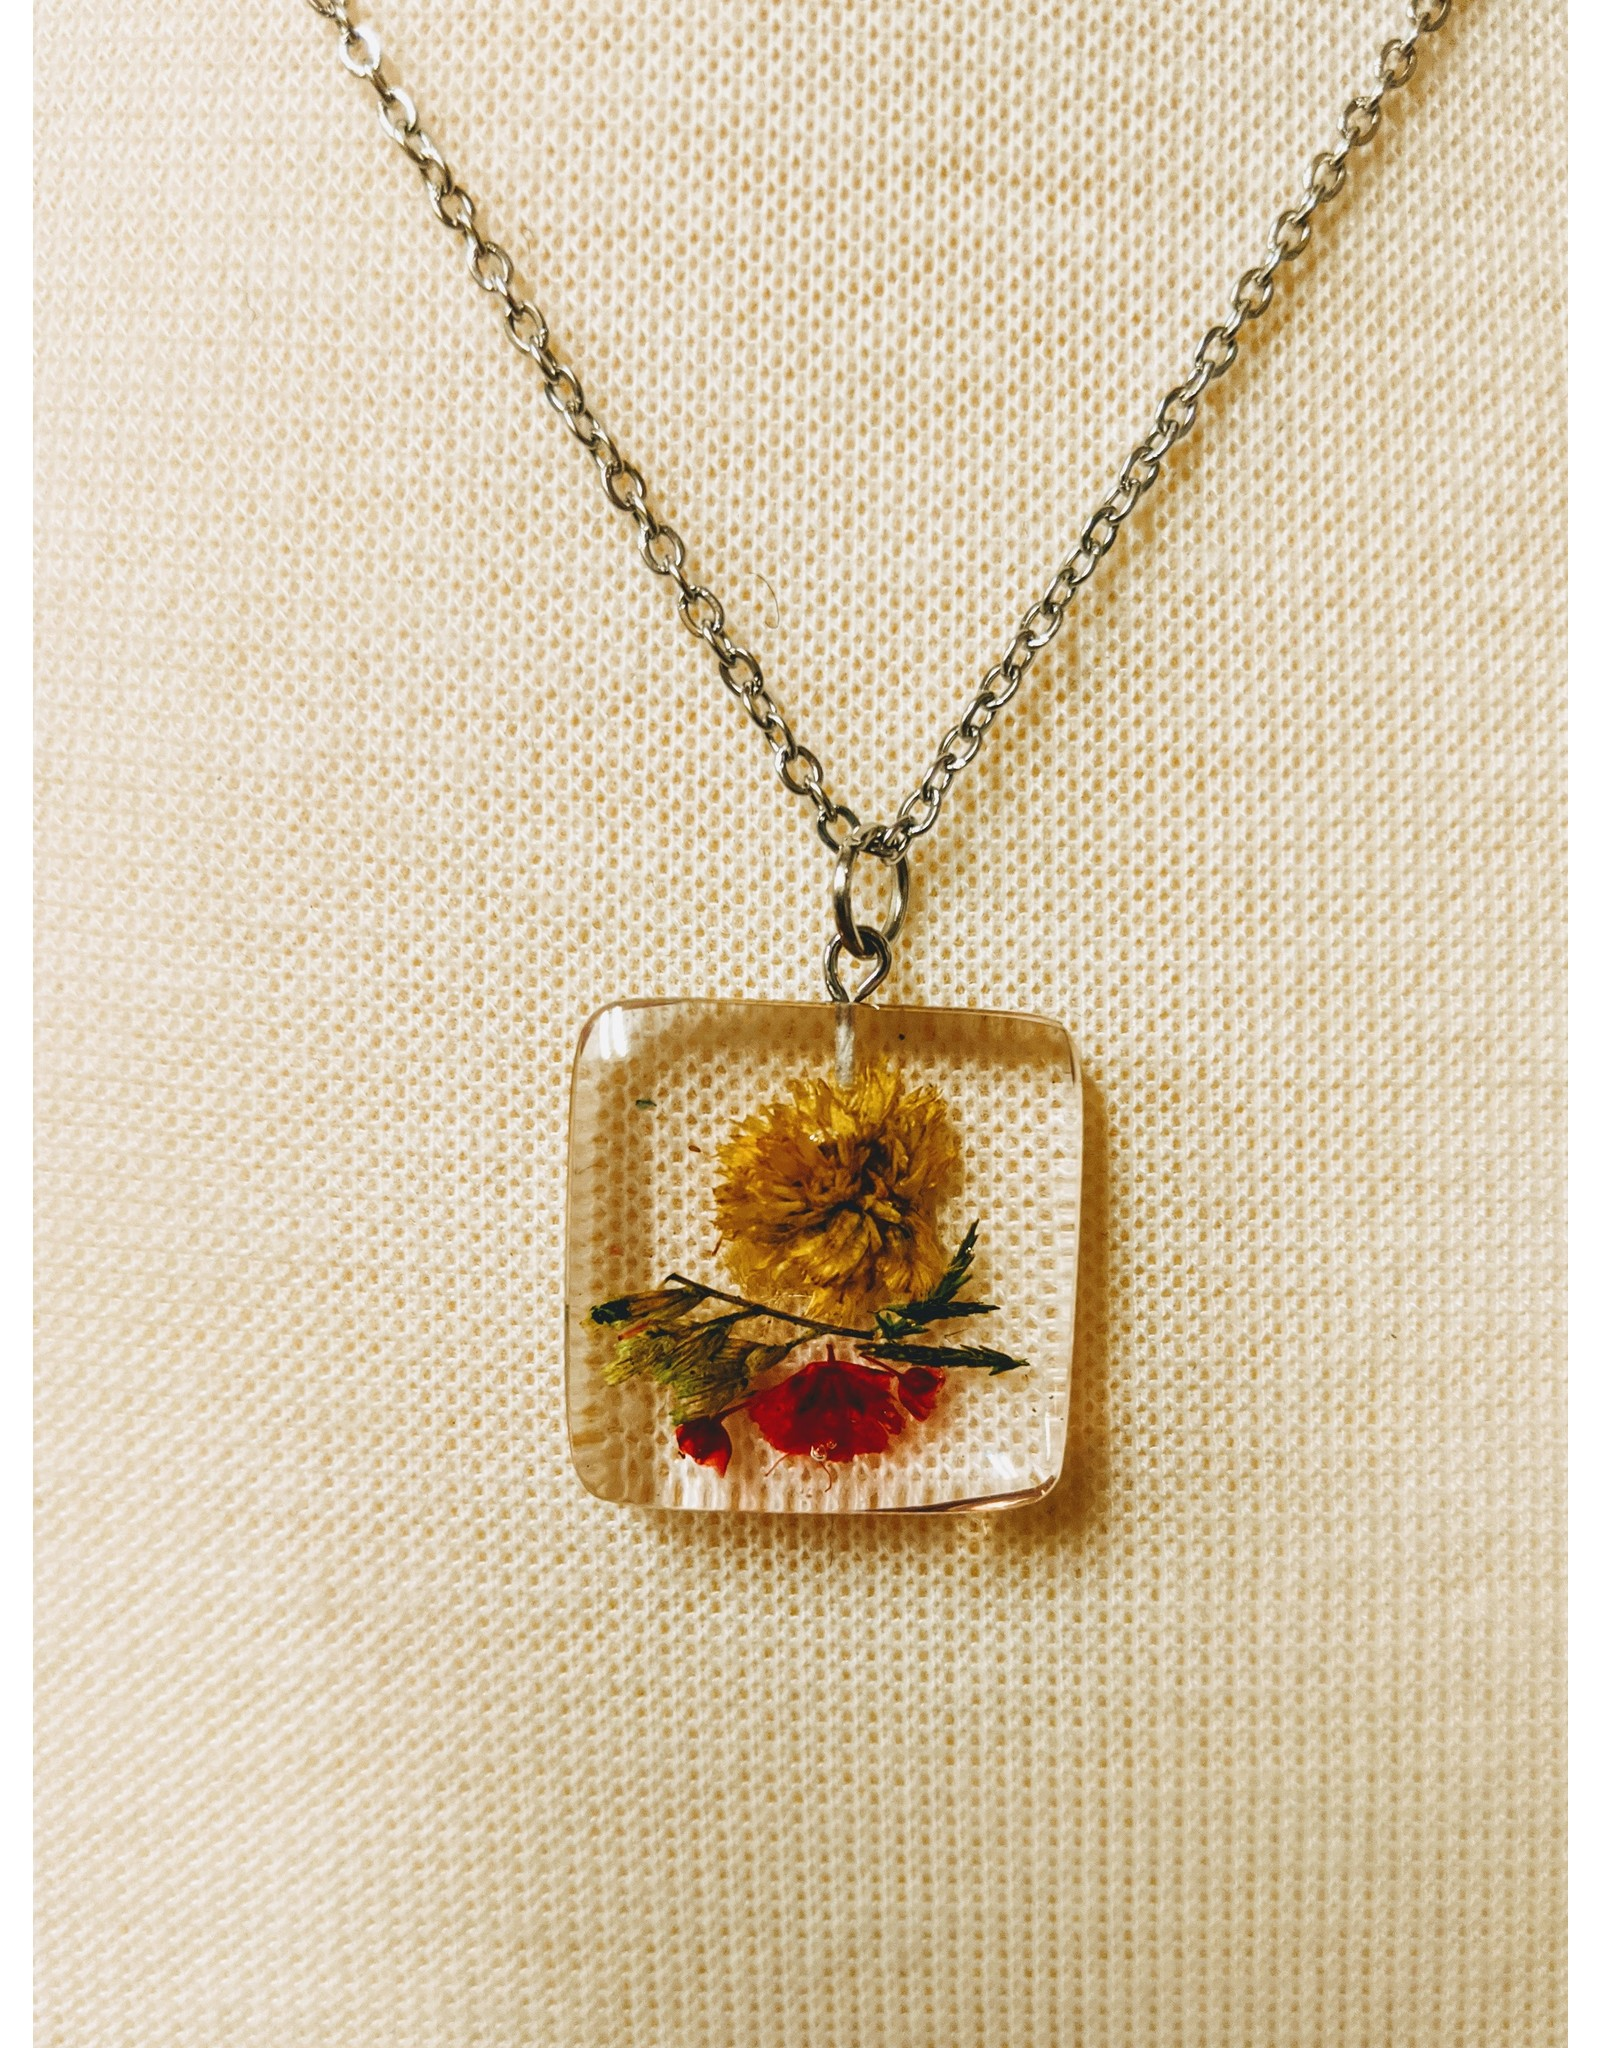 Ten Thousand Villages Square Necklace with Dried Flowers